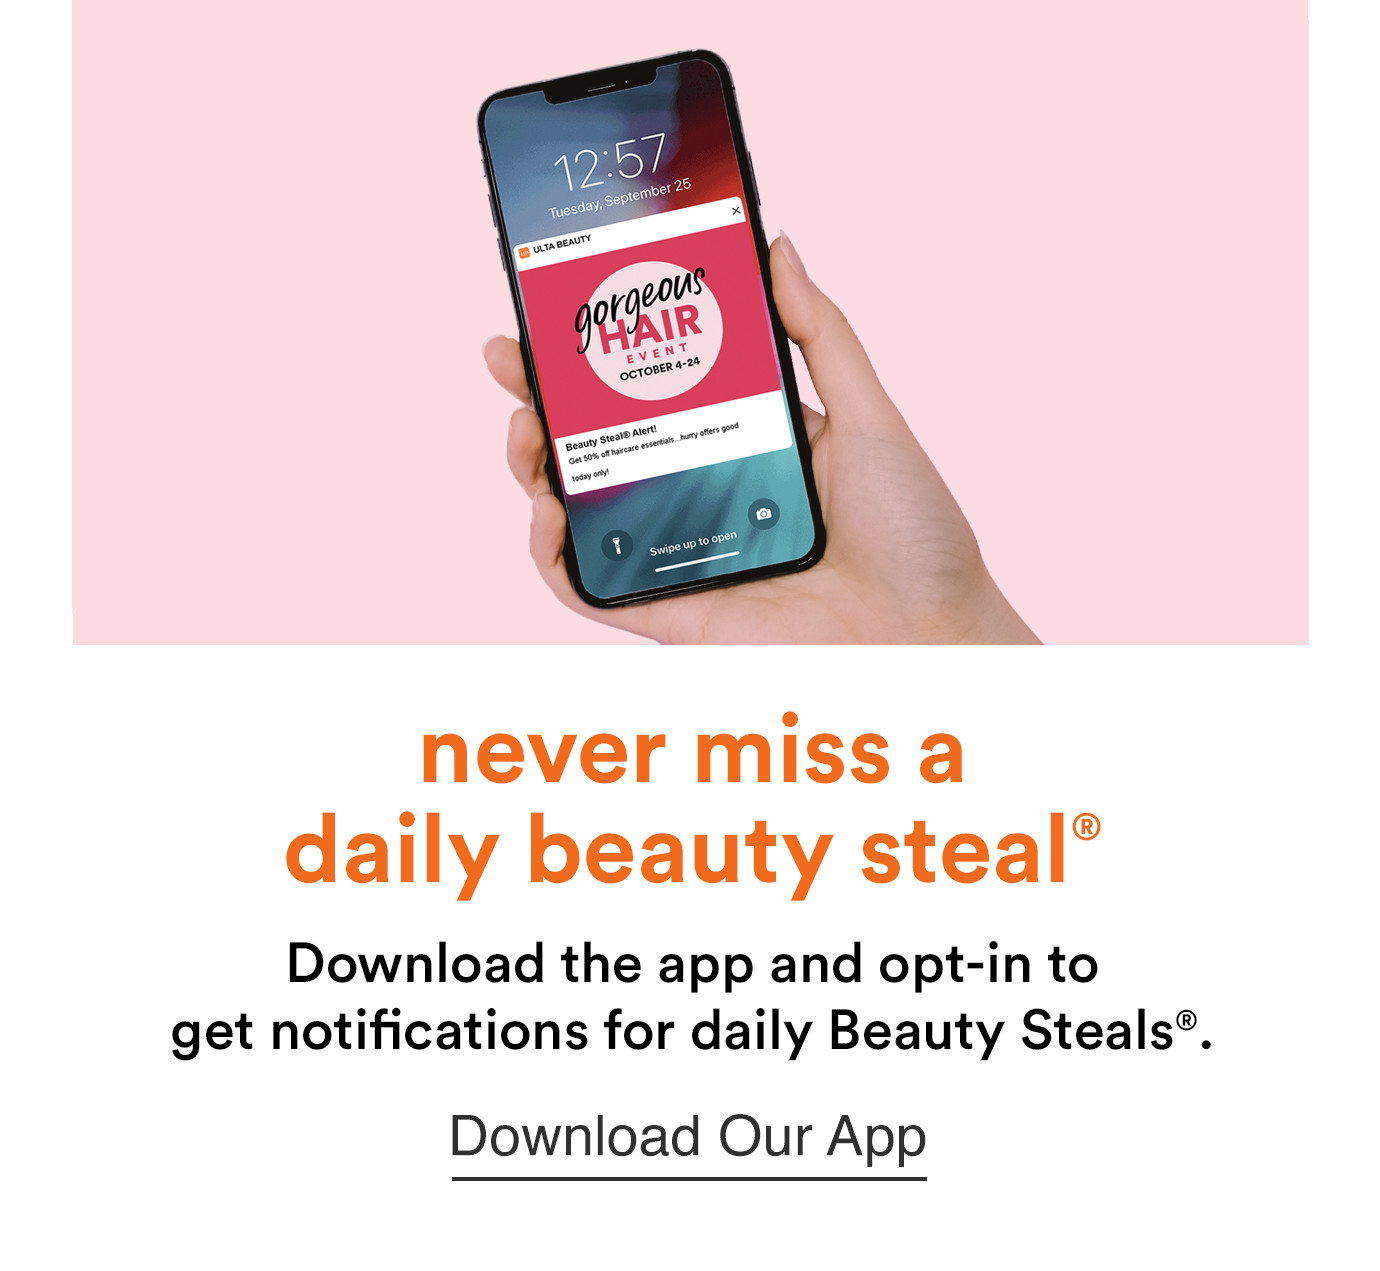 Never Miss a daily Beauty Steal. Download the Ulta Beauty app and opt-in to get notifications for daily Beauty Steals